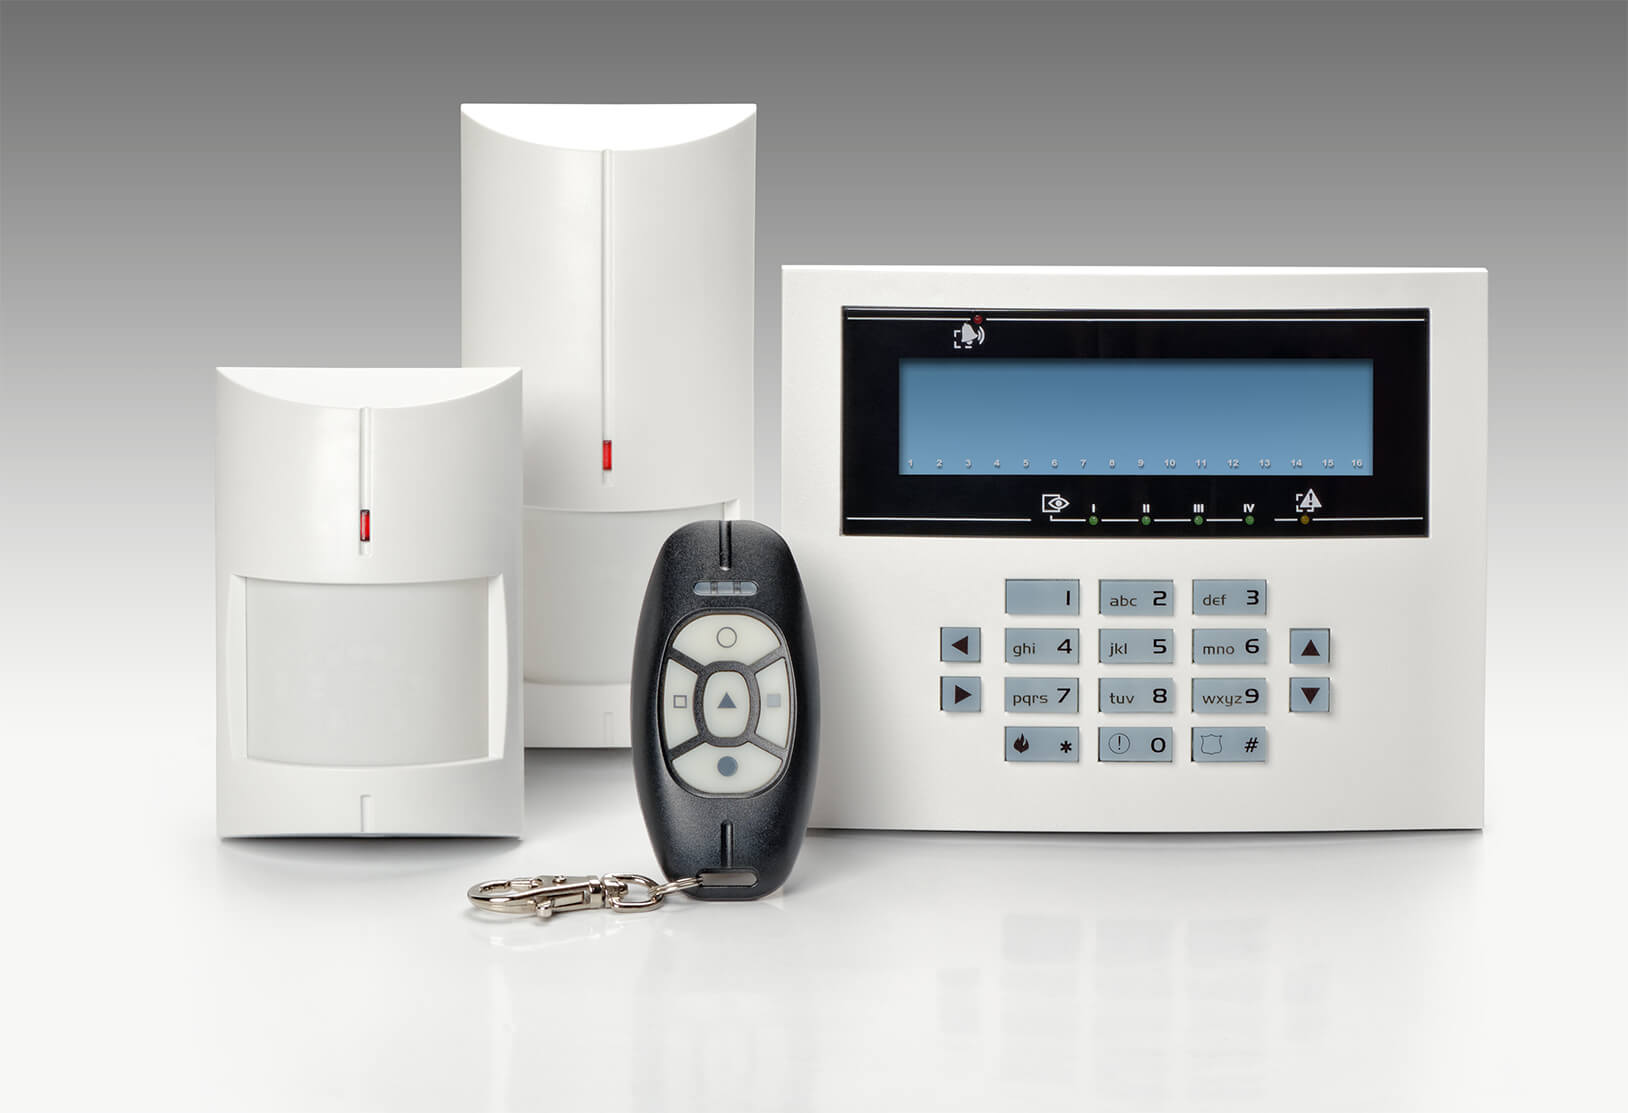 Commercial Burglar Alarms For Business in East London  - Local East London burglar alarm company.Call 02078872244 - Dedicated to Safety & Security. Companies, shops and homes ..